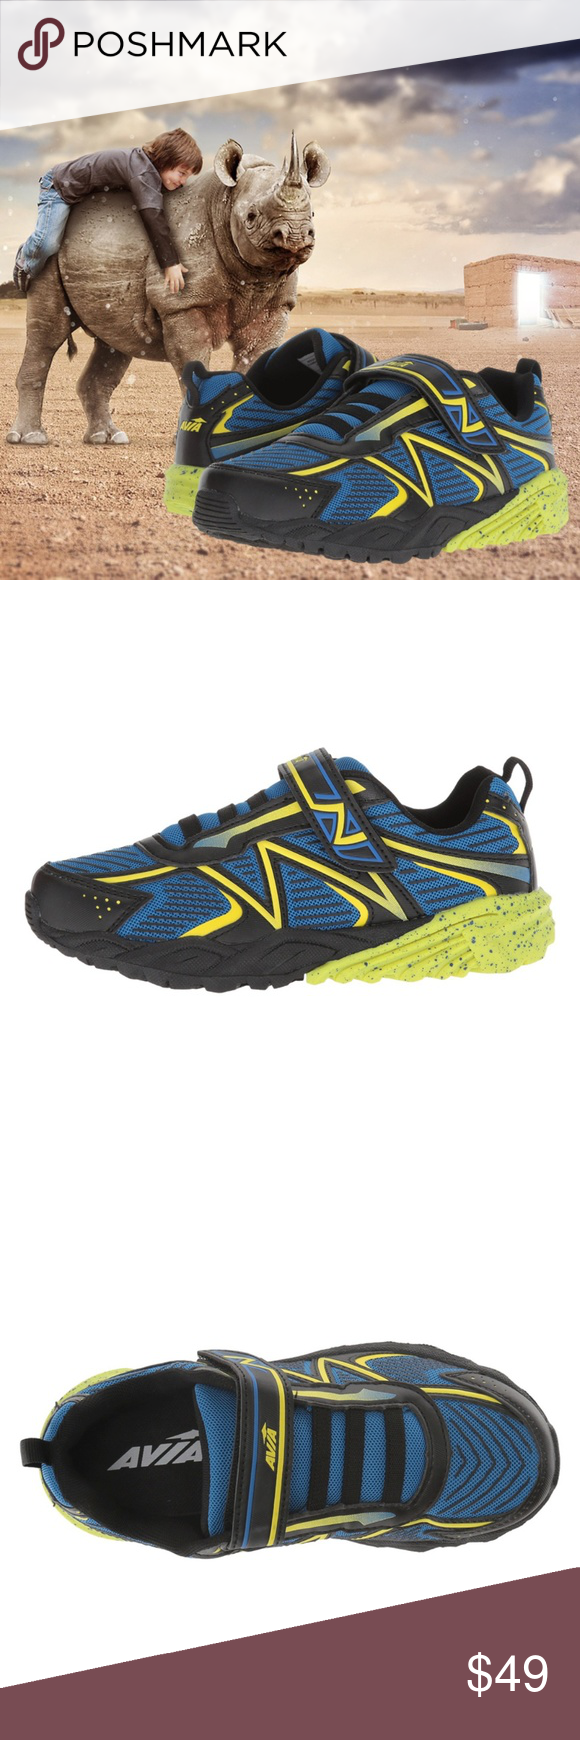 Avia Kids Avi-Force Running Shoe